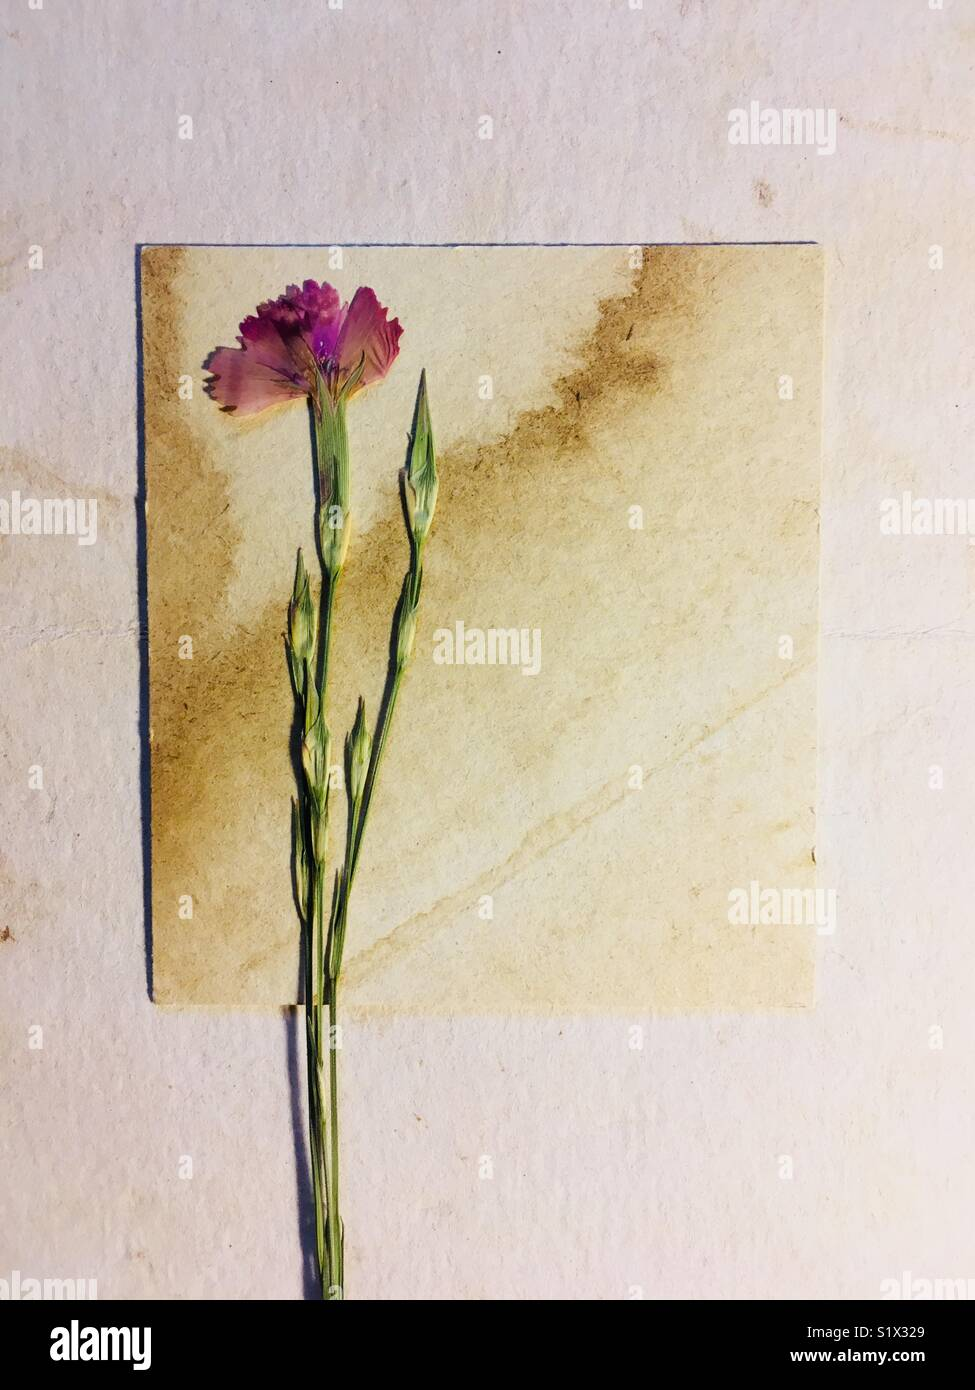 dried flower on old paper - Stock Image